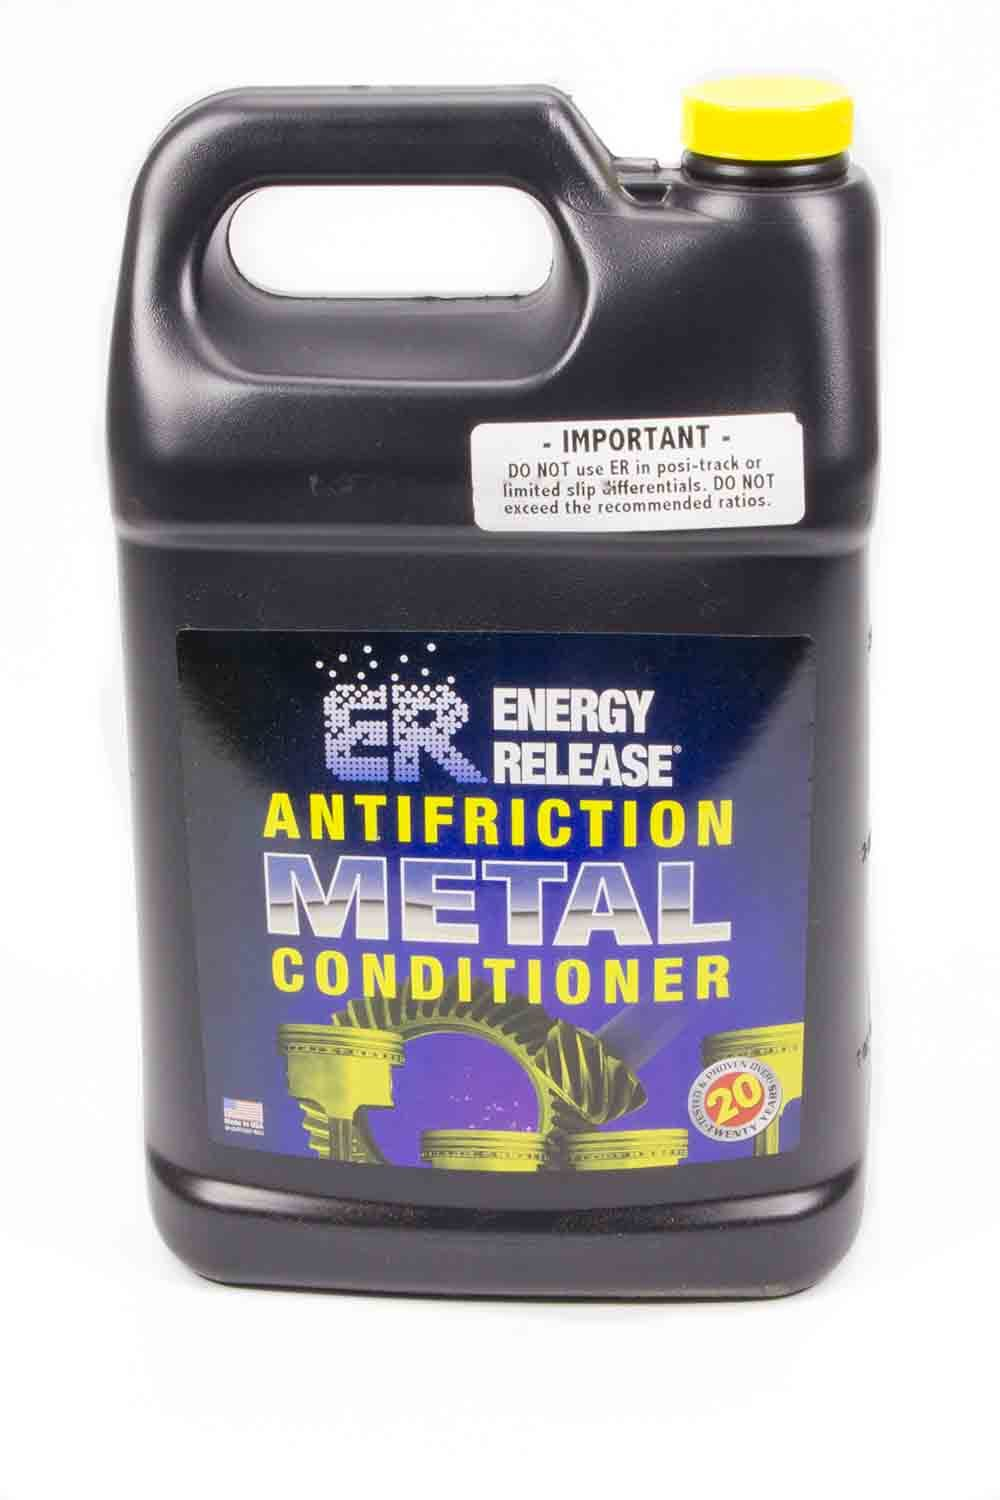 Energy Release P003 Metal Conditioner, ER Antifriction Metal Treatment, 1 gal Jug, Each